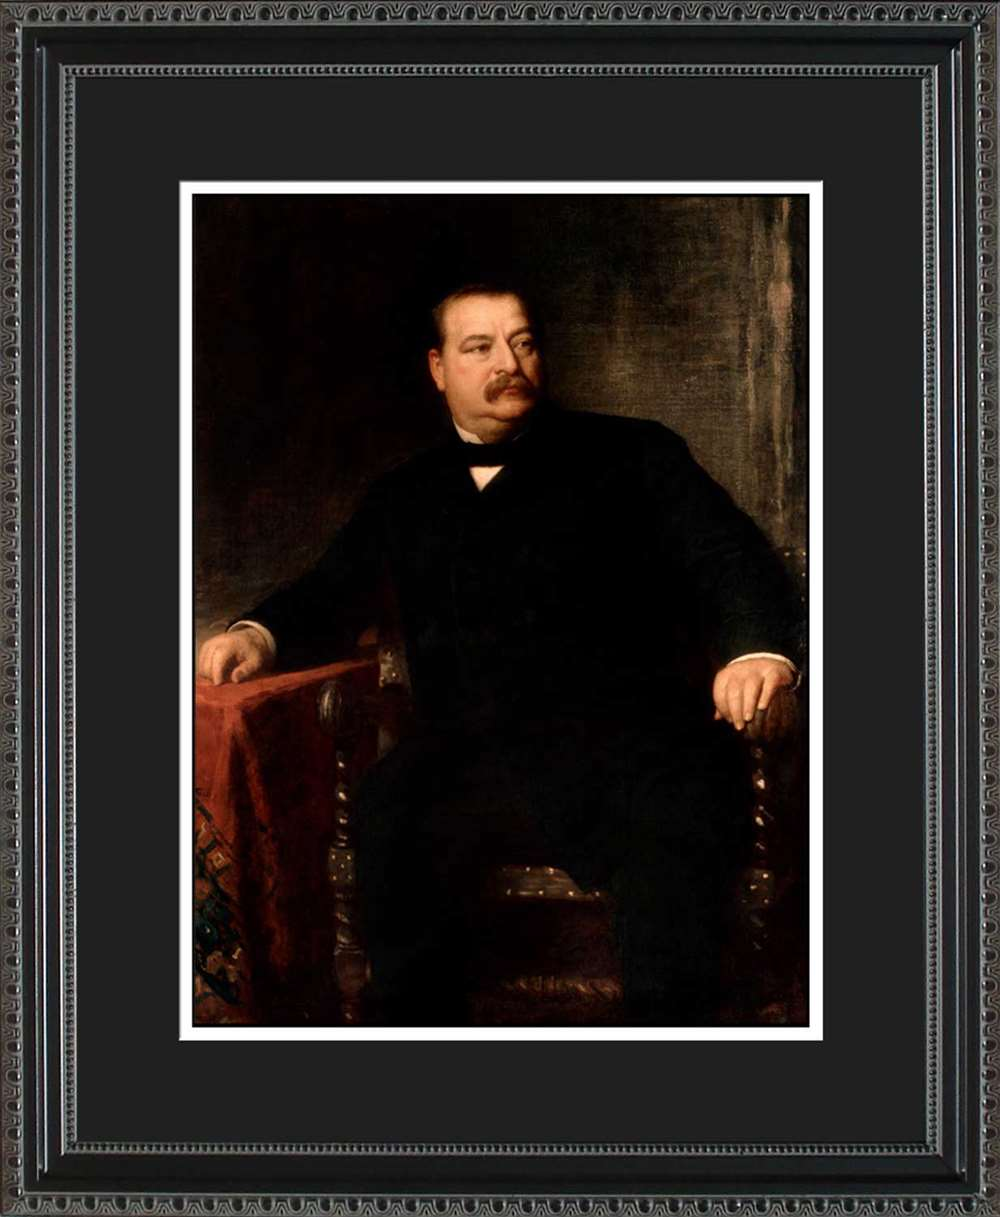 Grover Cleveland Official President Portrait, 16x20